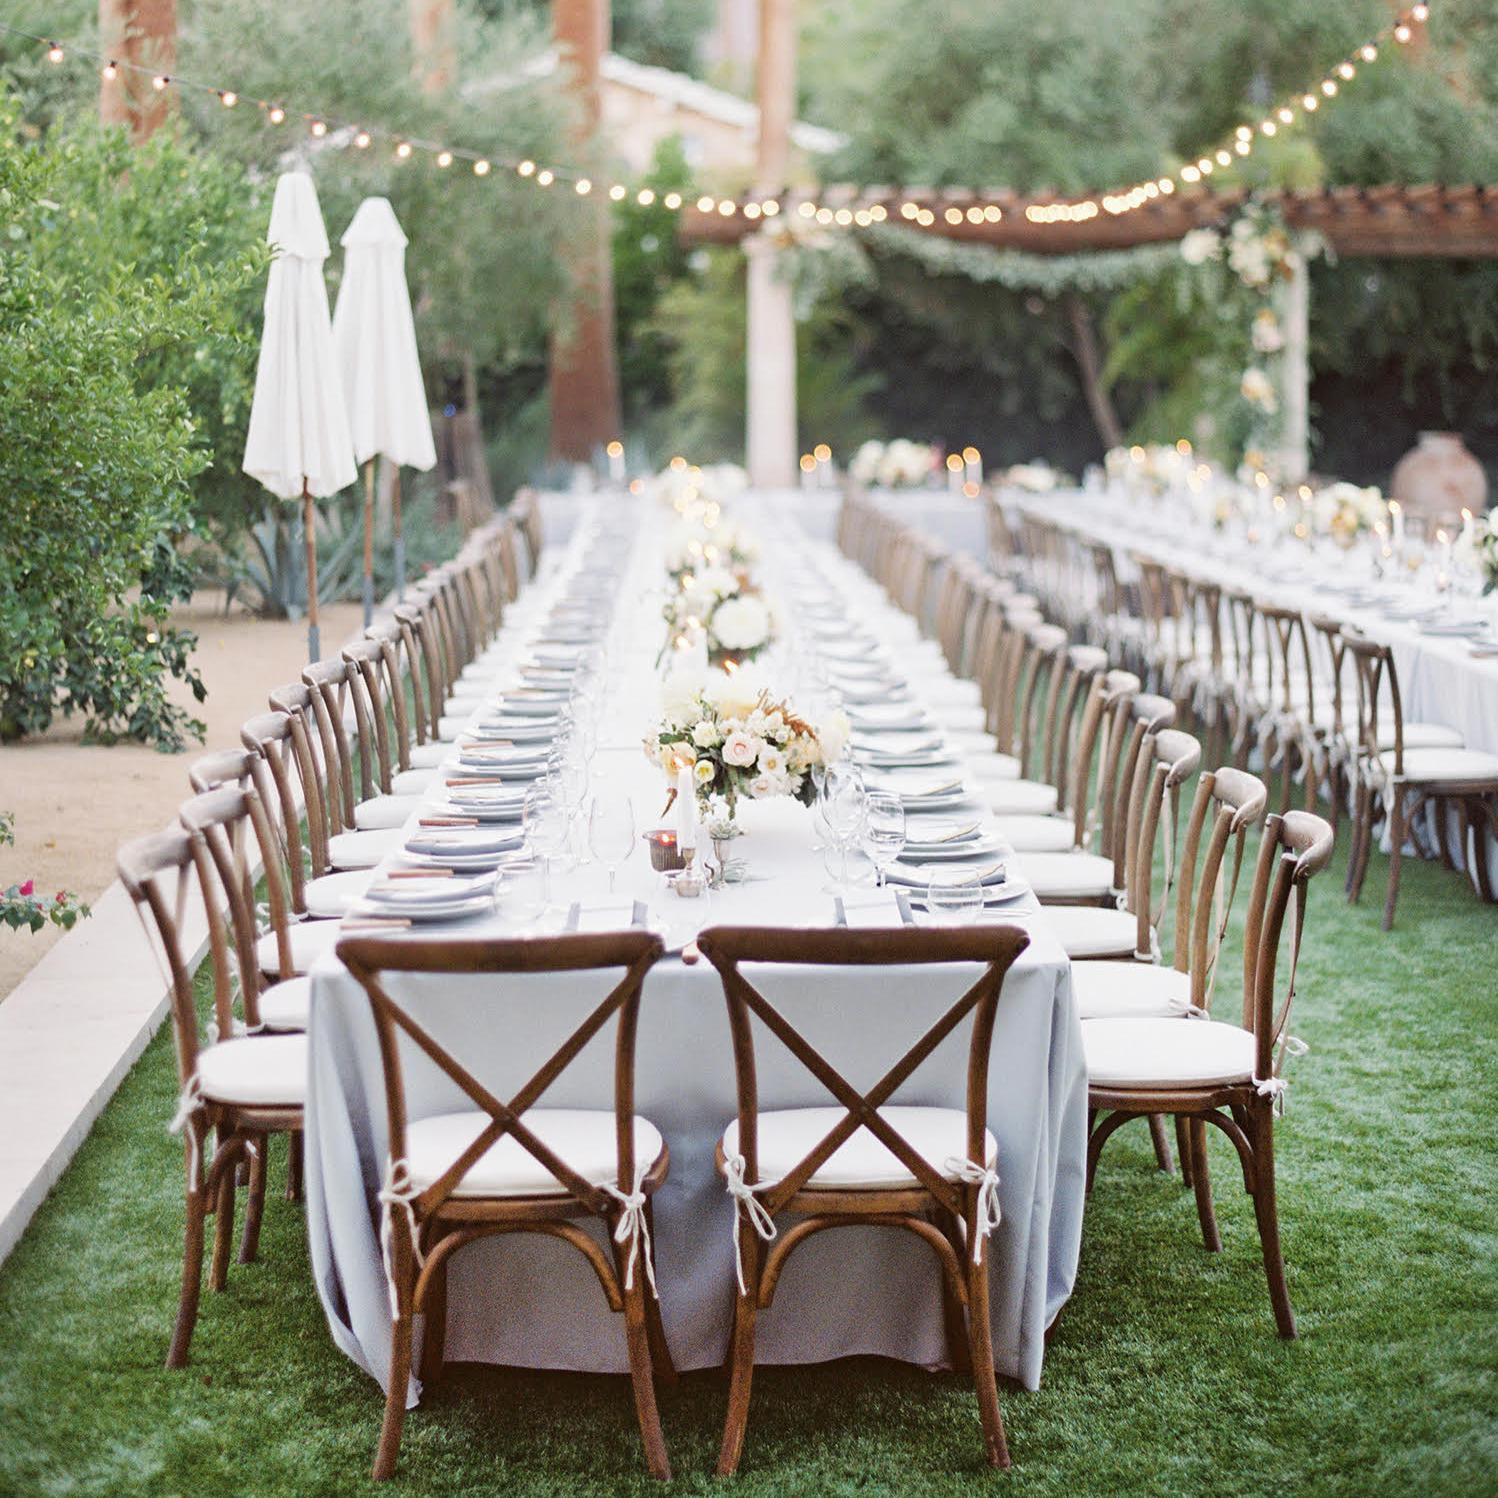 23 Beautiful Banquet-Style Tables For Your Wedding Reception